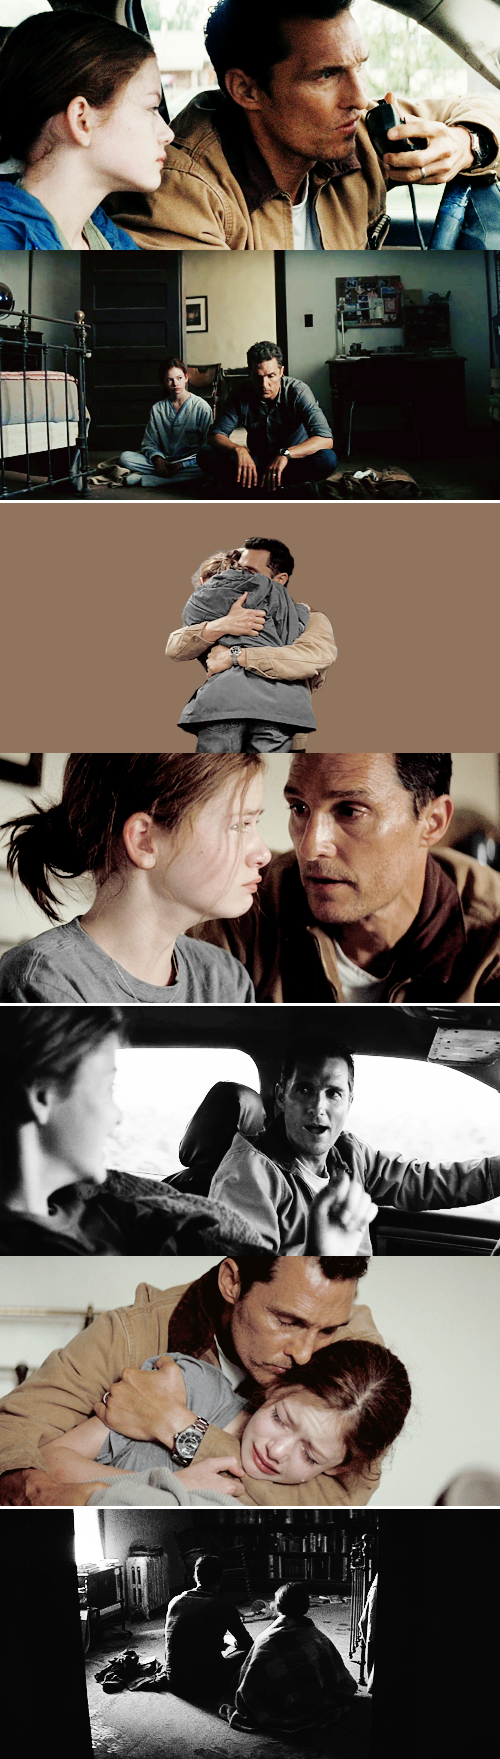 Interstellar 2014 : I loved this movie so much!! The feels... ||Once you're a parent, you're the ghost of your children's future. -Cooper, Interstellar